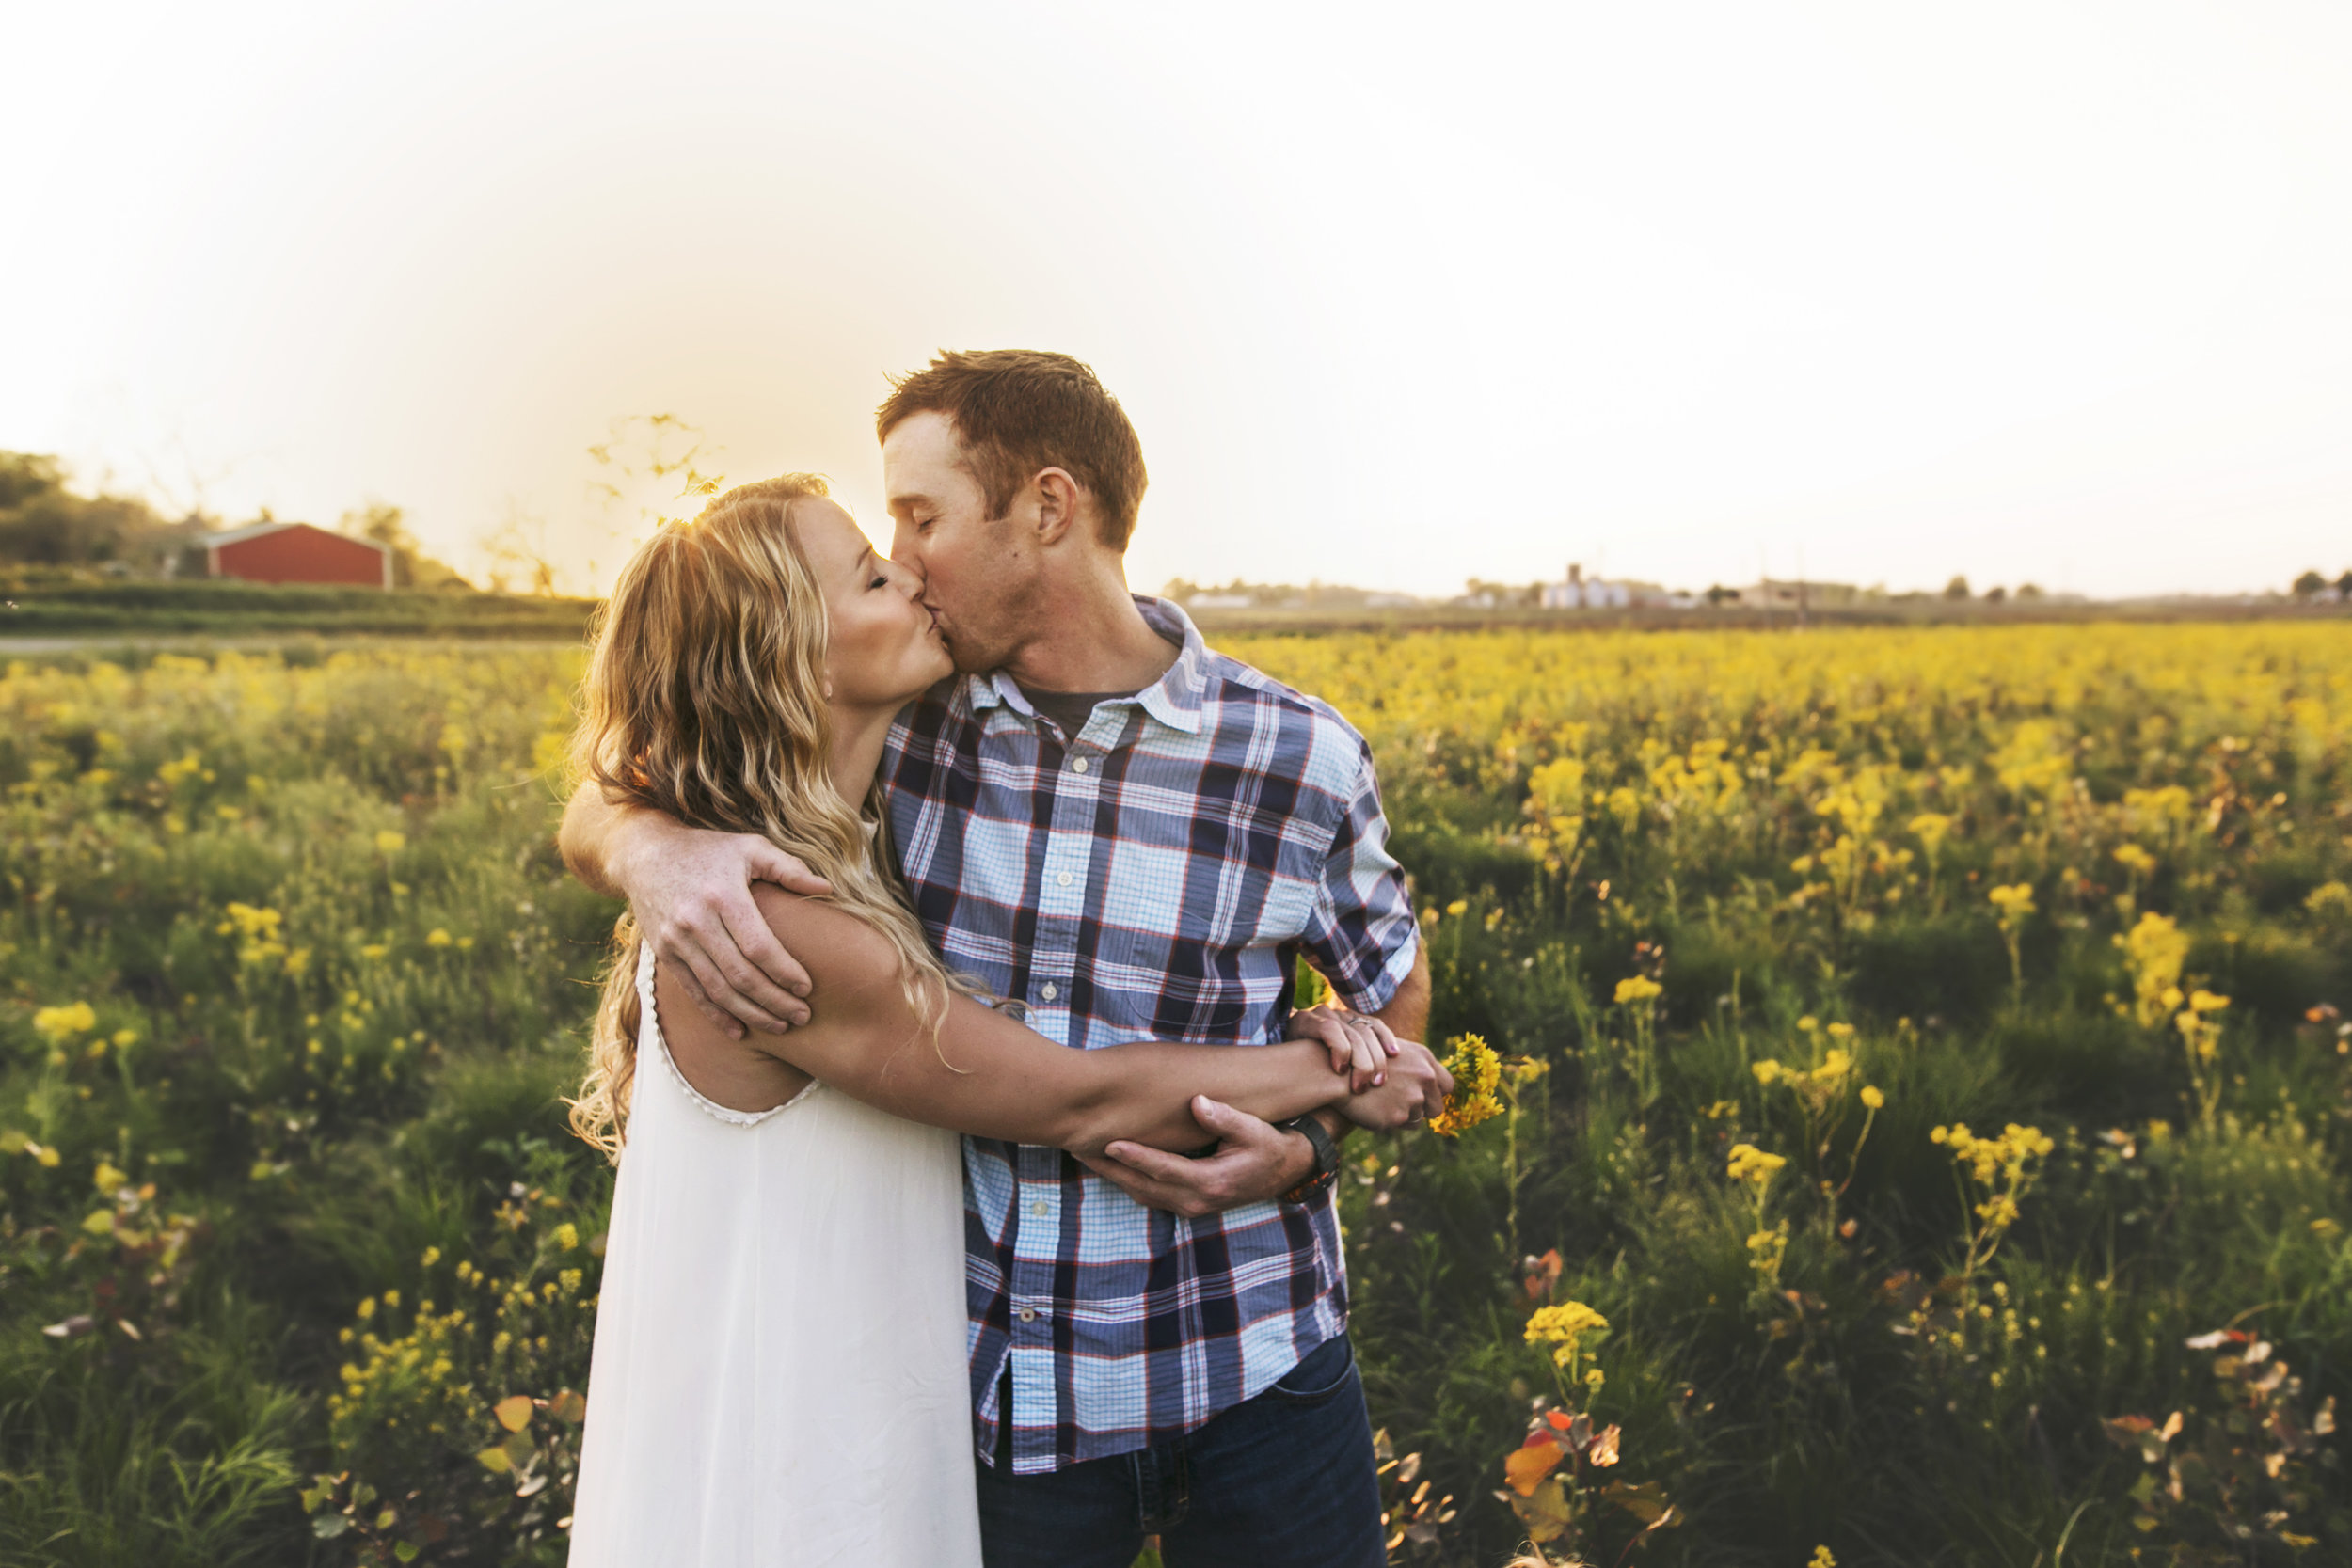 South Bend engagement pictures, family farm, yellow flowers field, red barn, white dress